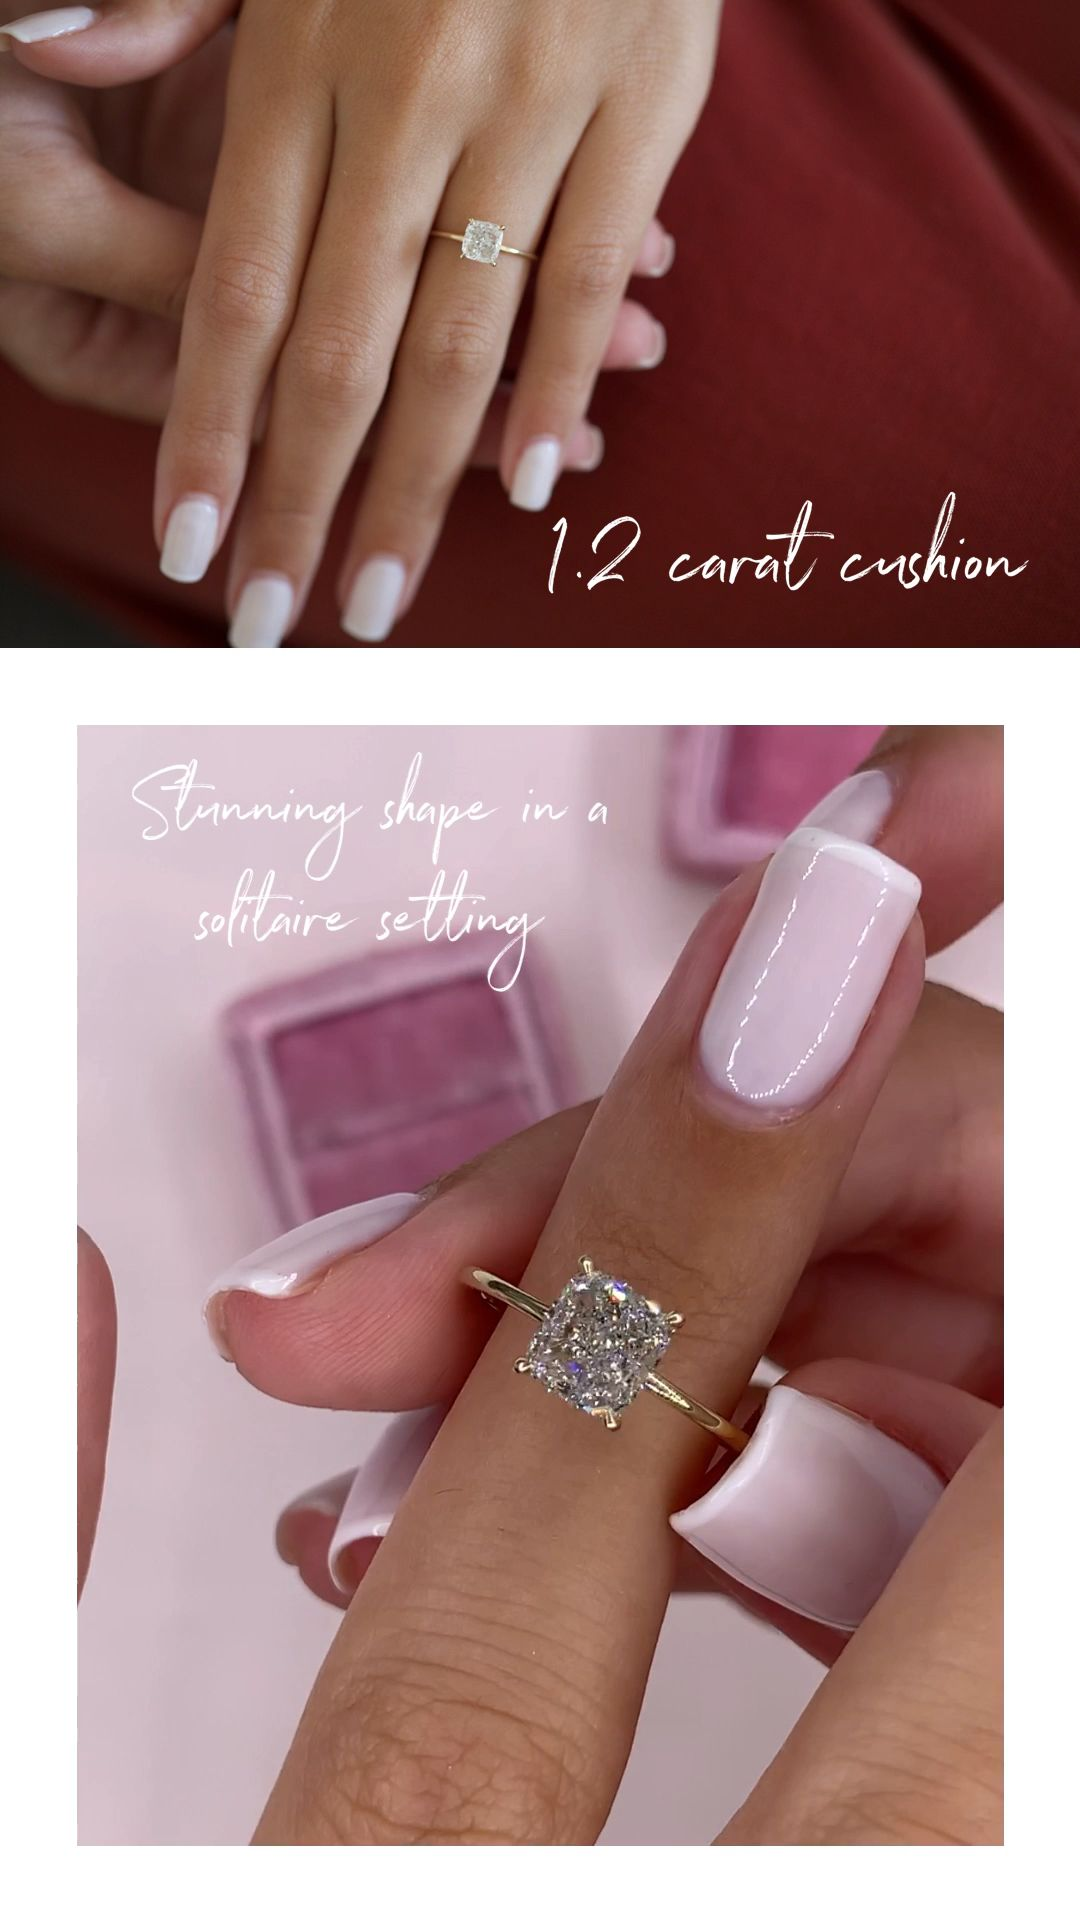 1.2 carat cushion engagement ring